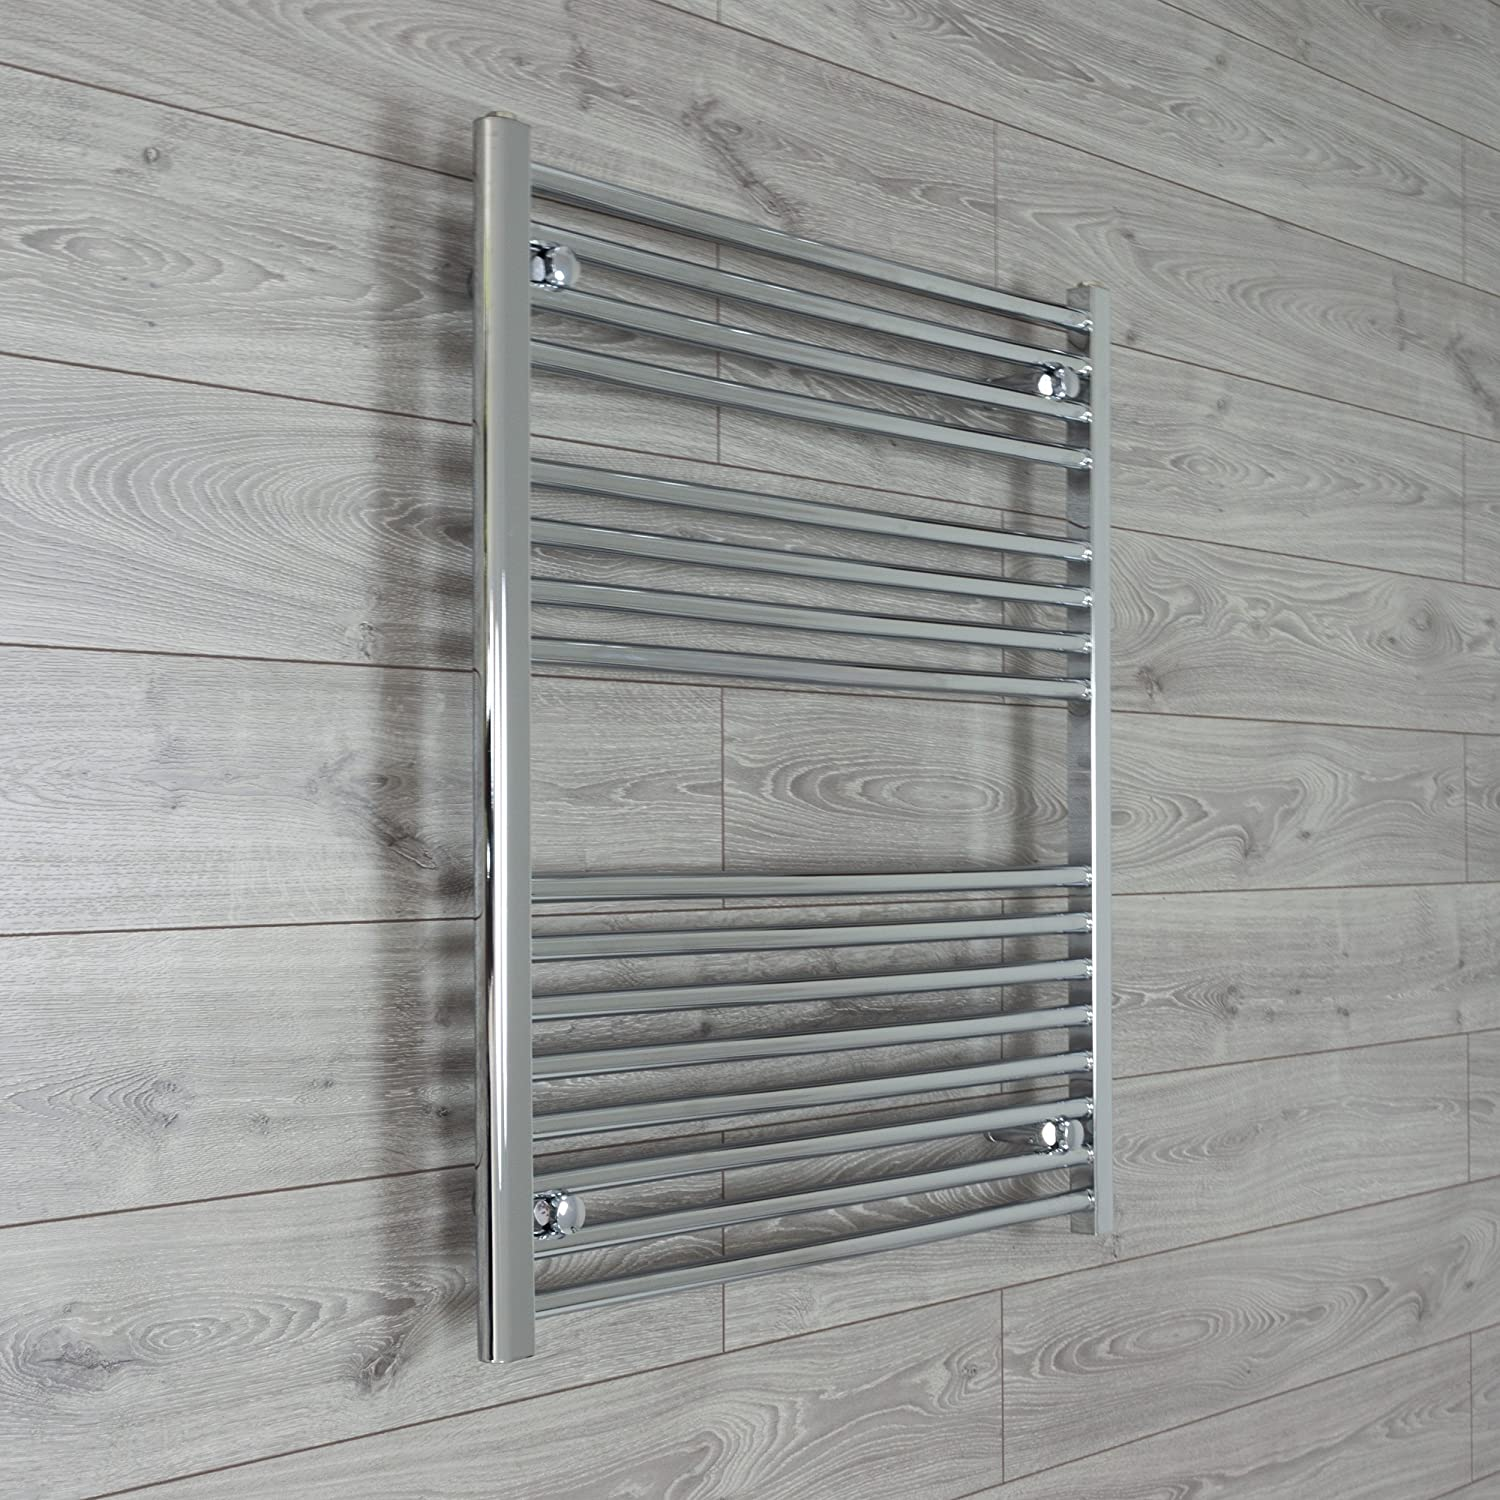 800mm Wide Chrome Heated Towel Rail Radiator Flat/Straight Ladder for Stylish Bathroom (800 x 400 mm) CBRAD